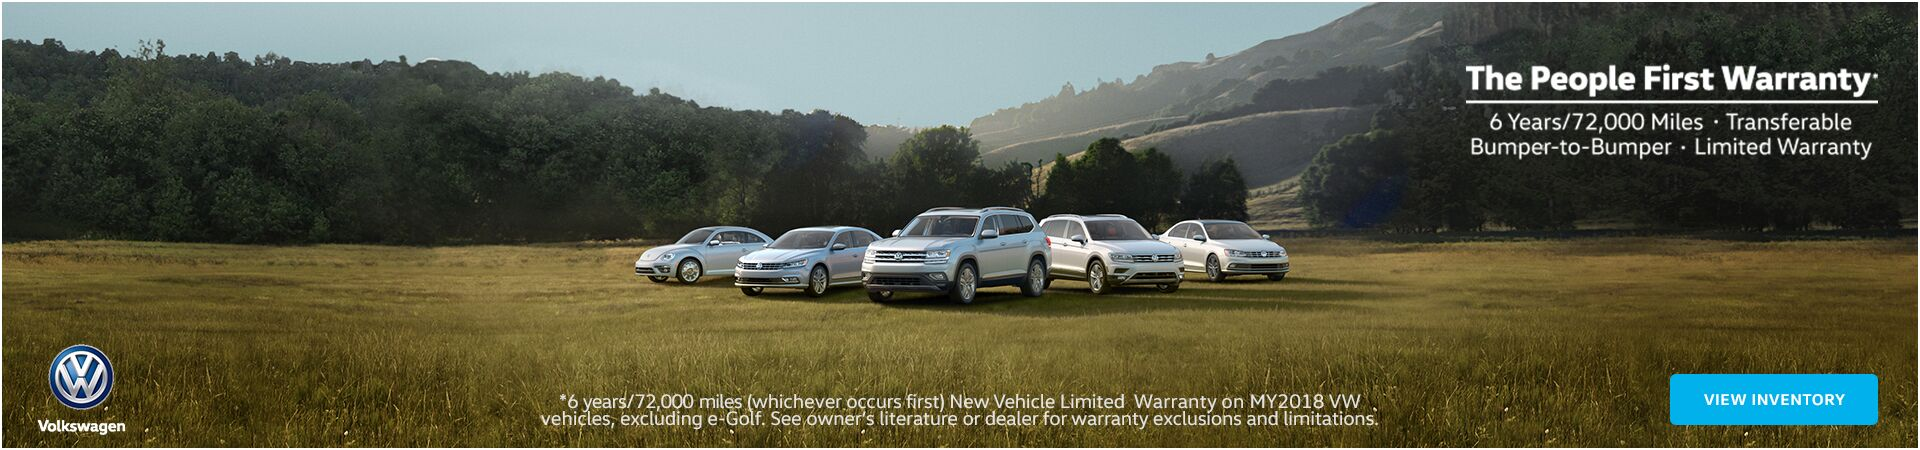 ri island people dealers volvo peoples s warranty the providence volkswagen first rhode in vw scott dealer